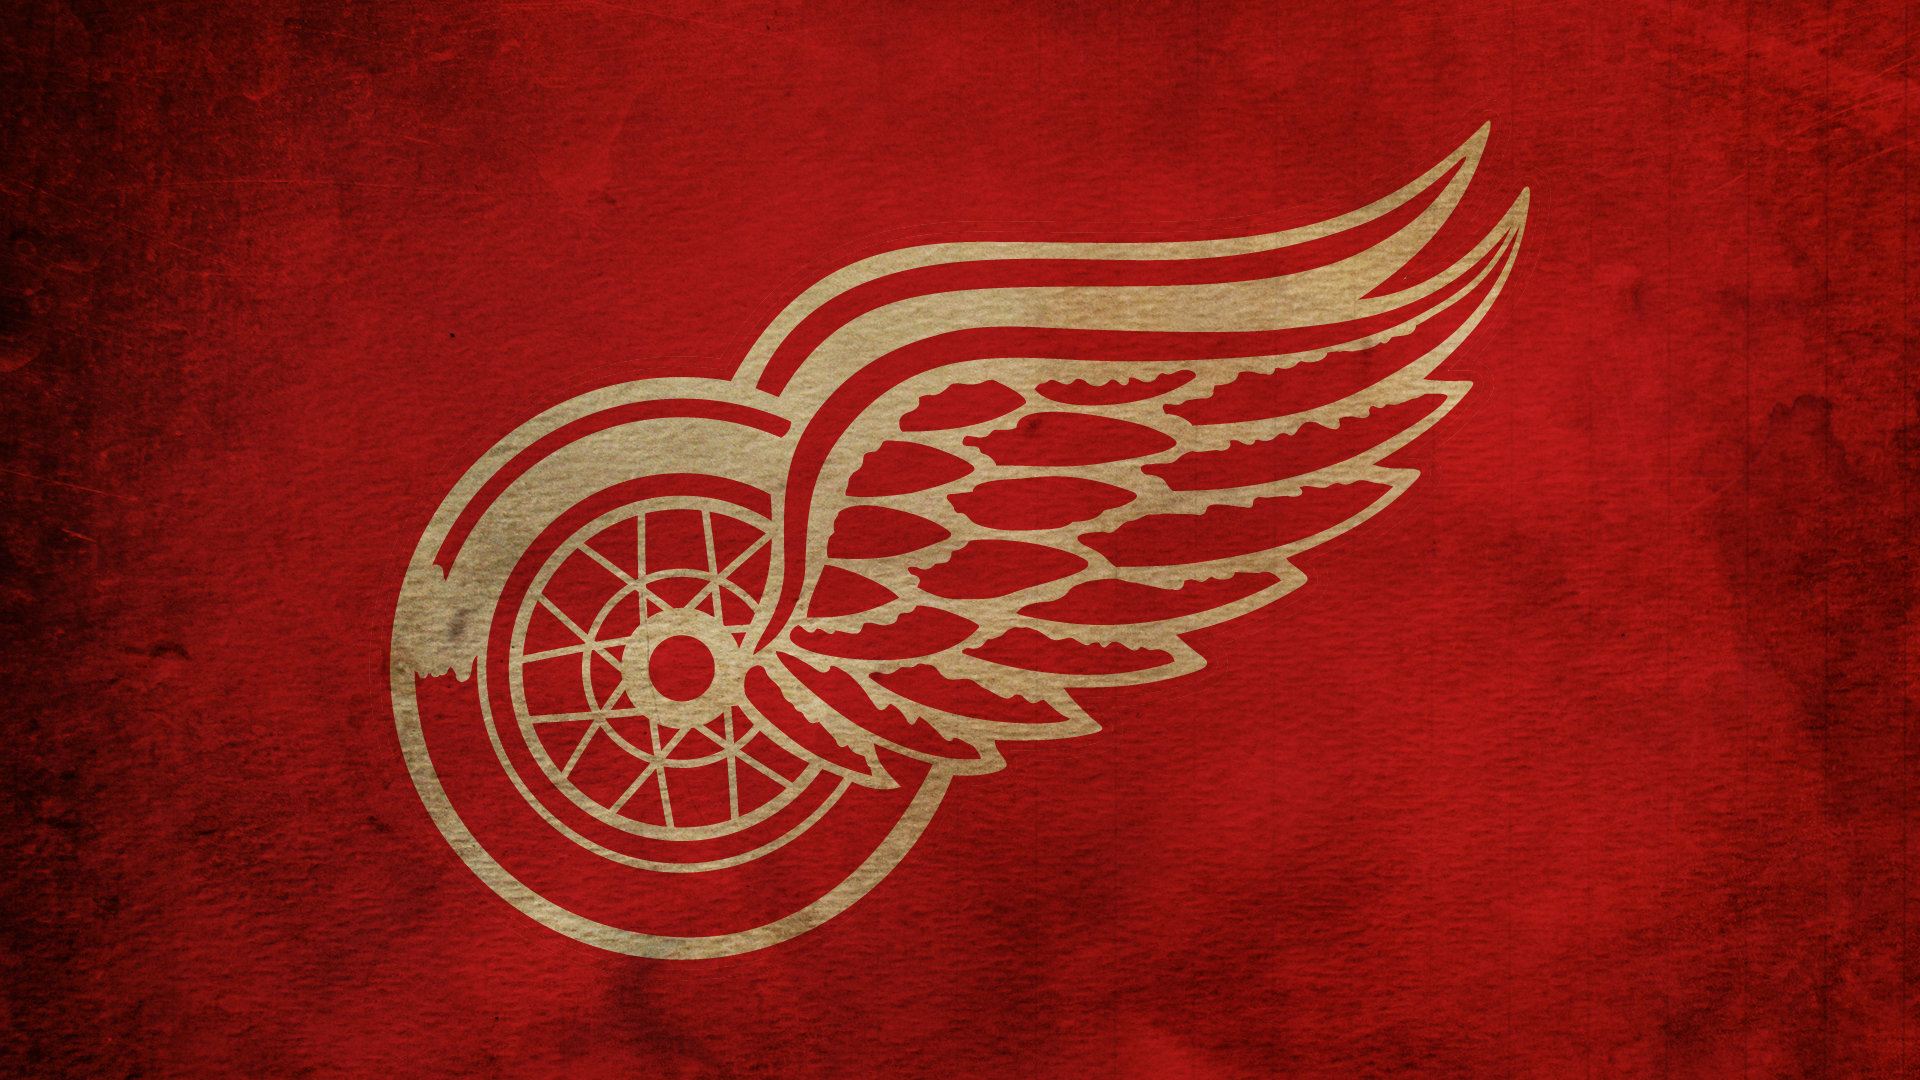 Check this out our new Detroit Red Wings wallpaper 1920x1080